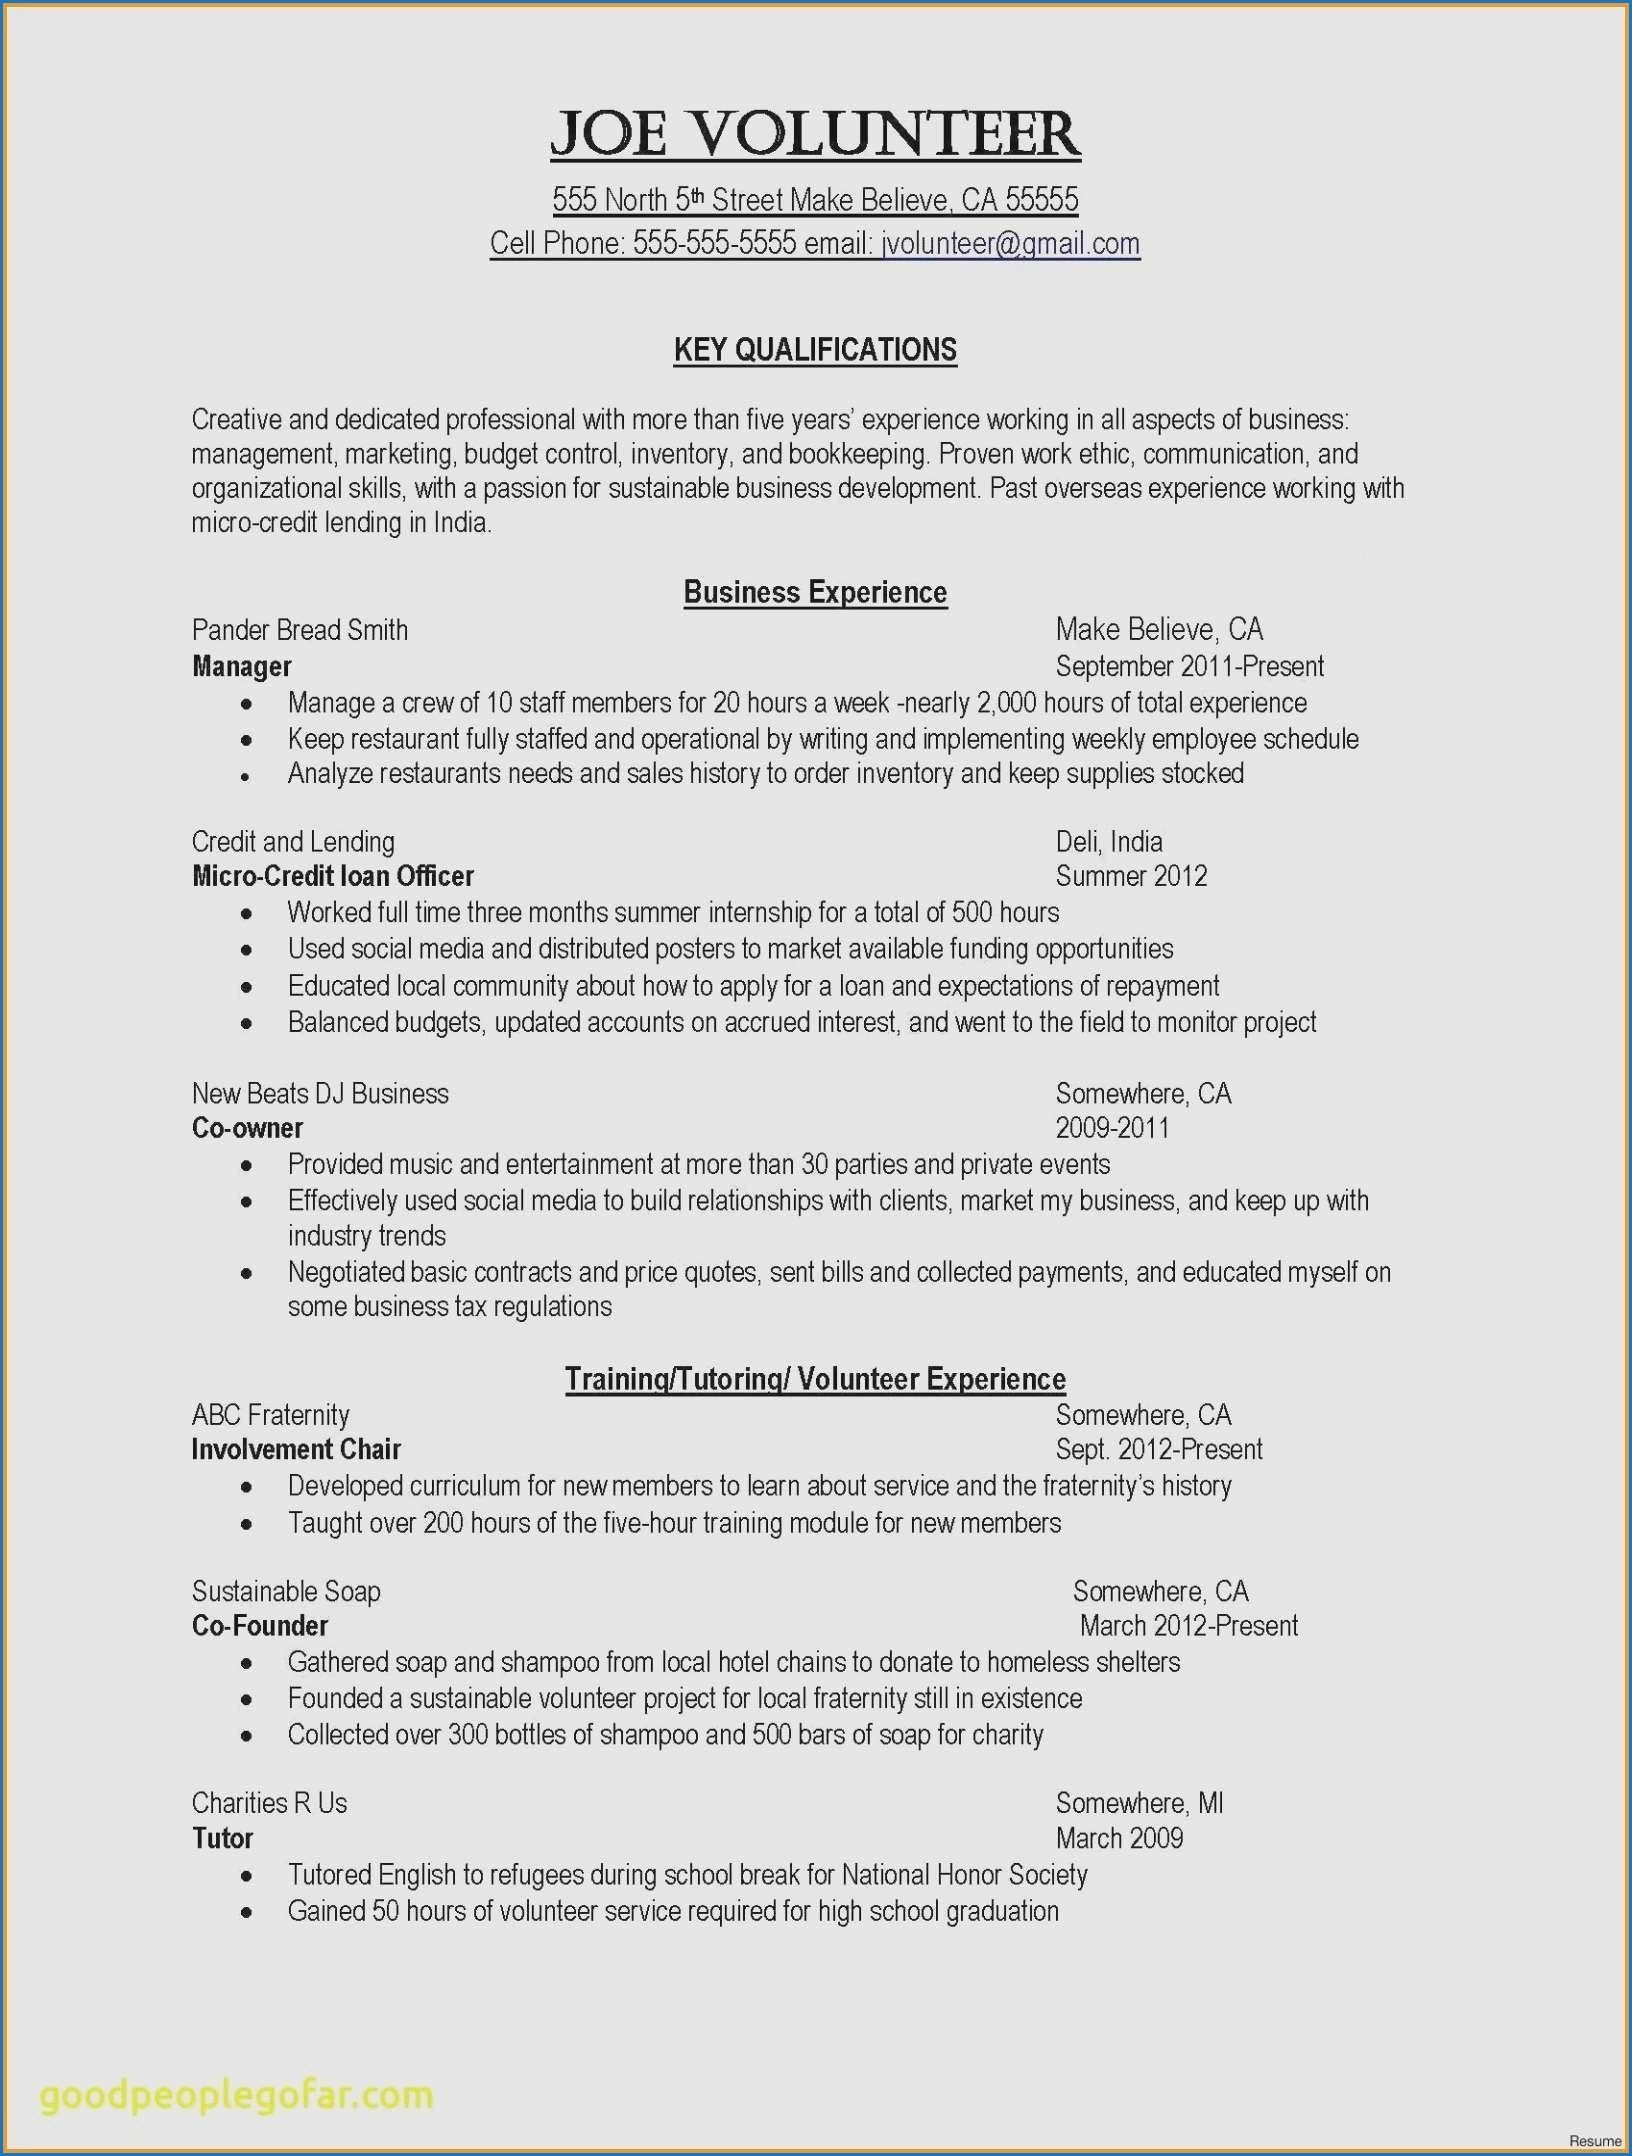 Email Icon For Resume Inspirational North Carolina Outline Inspirational Examples Rn Resumes New In 2020 Resume Words Resume Examples Event Planning Quotes